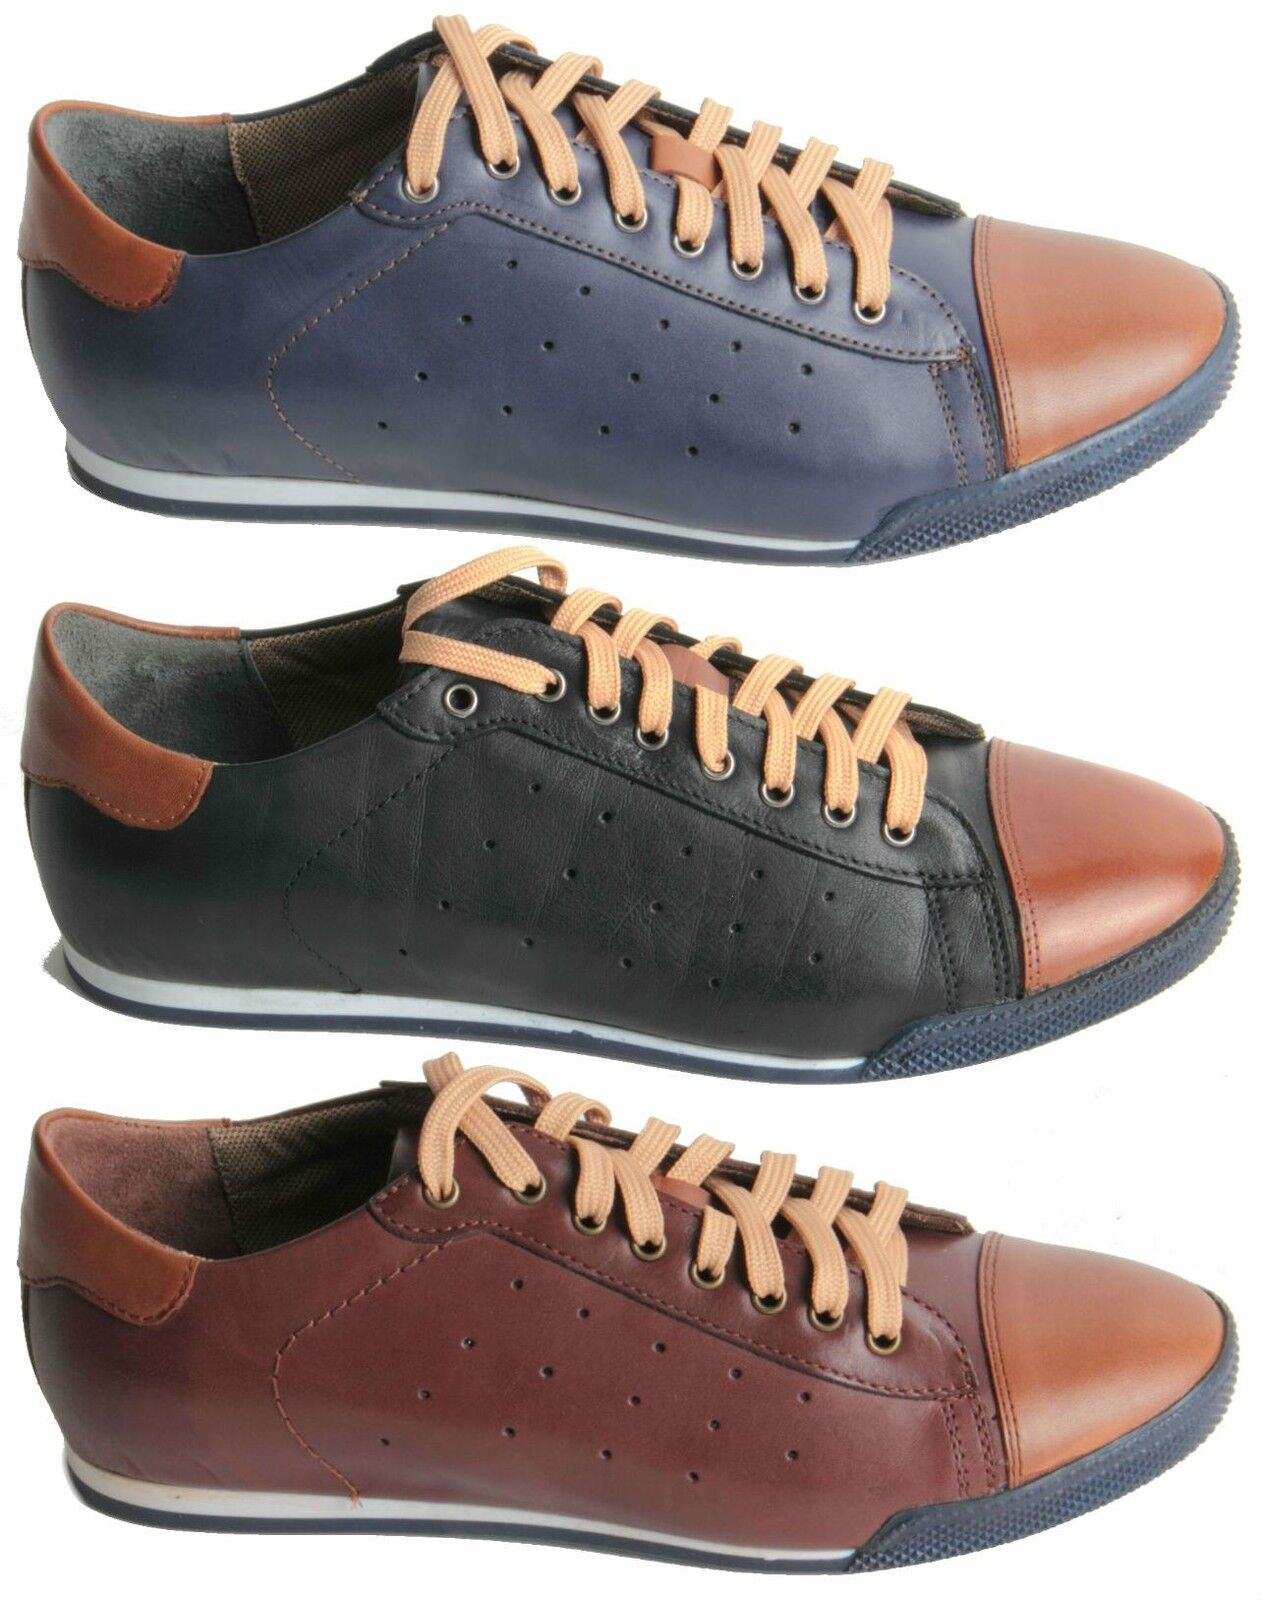 Hombre Toe Zapatos Genuine Leather Lace Up Capped Toe Hombre Trainers Decorative Sole Zapatos 25b393